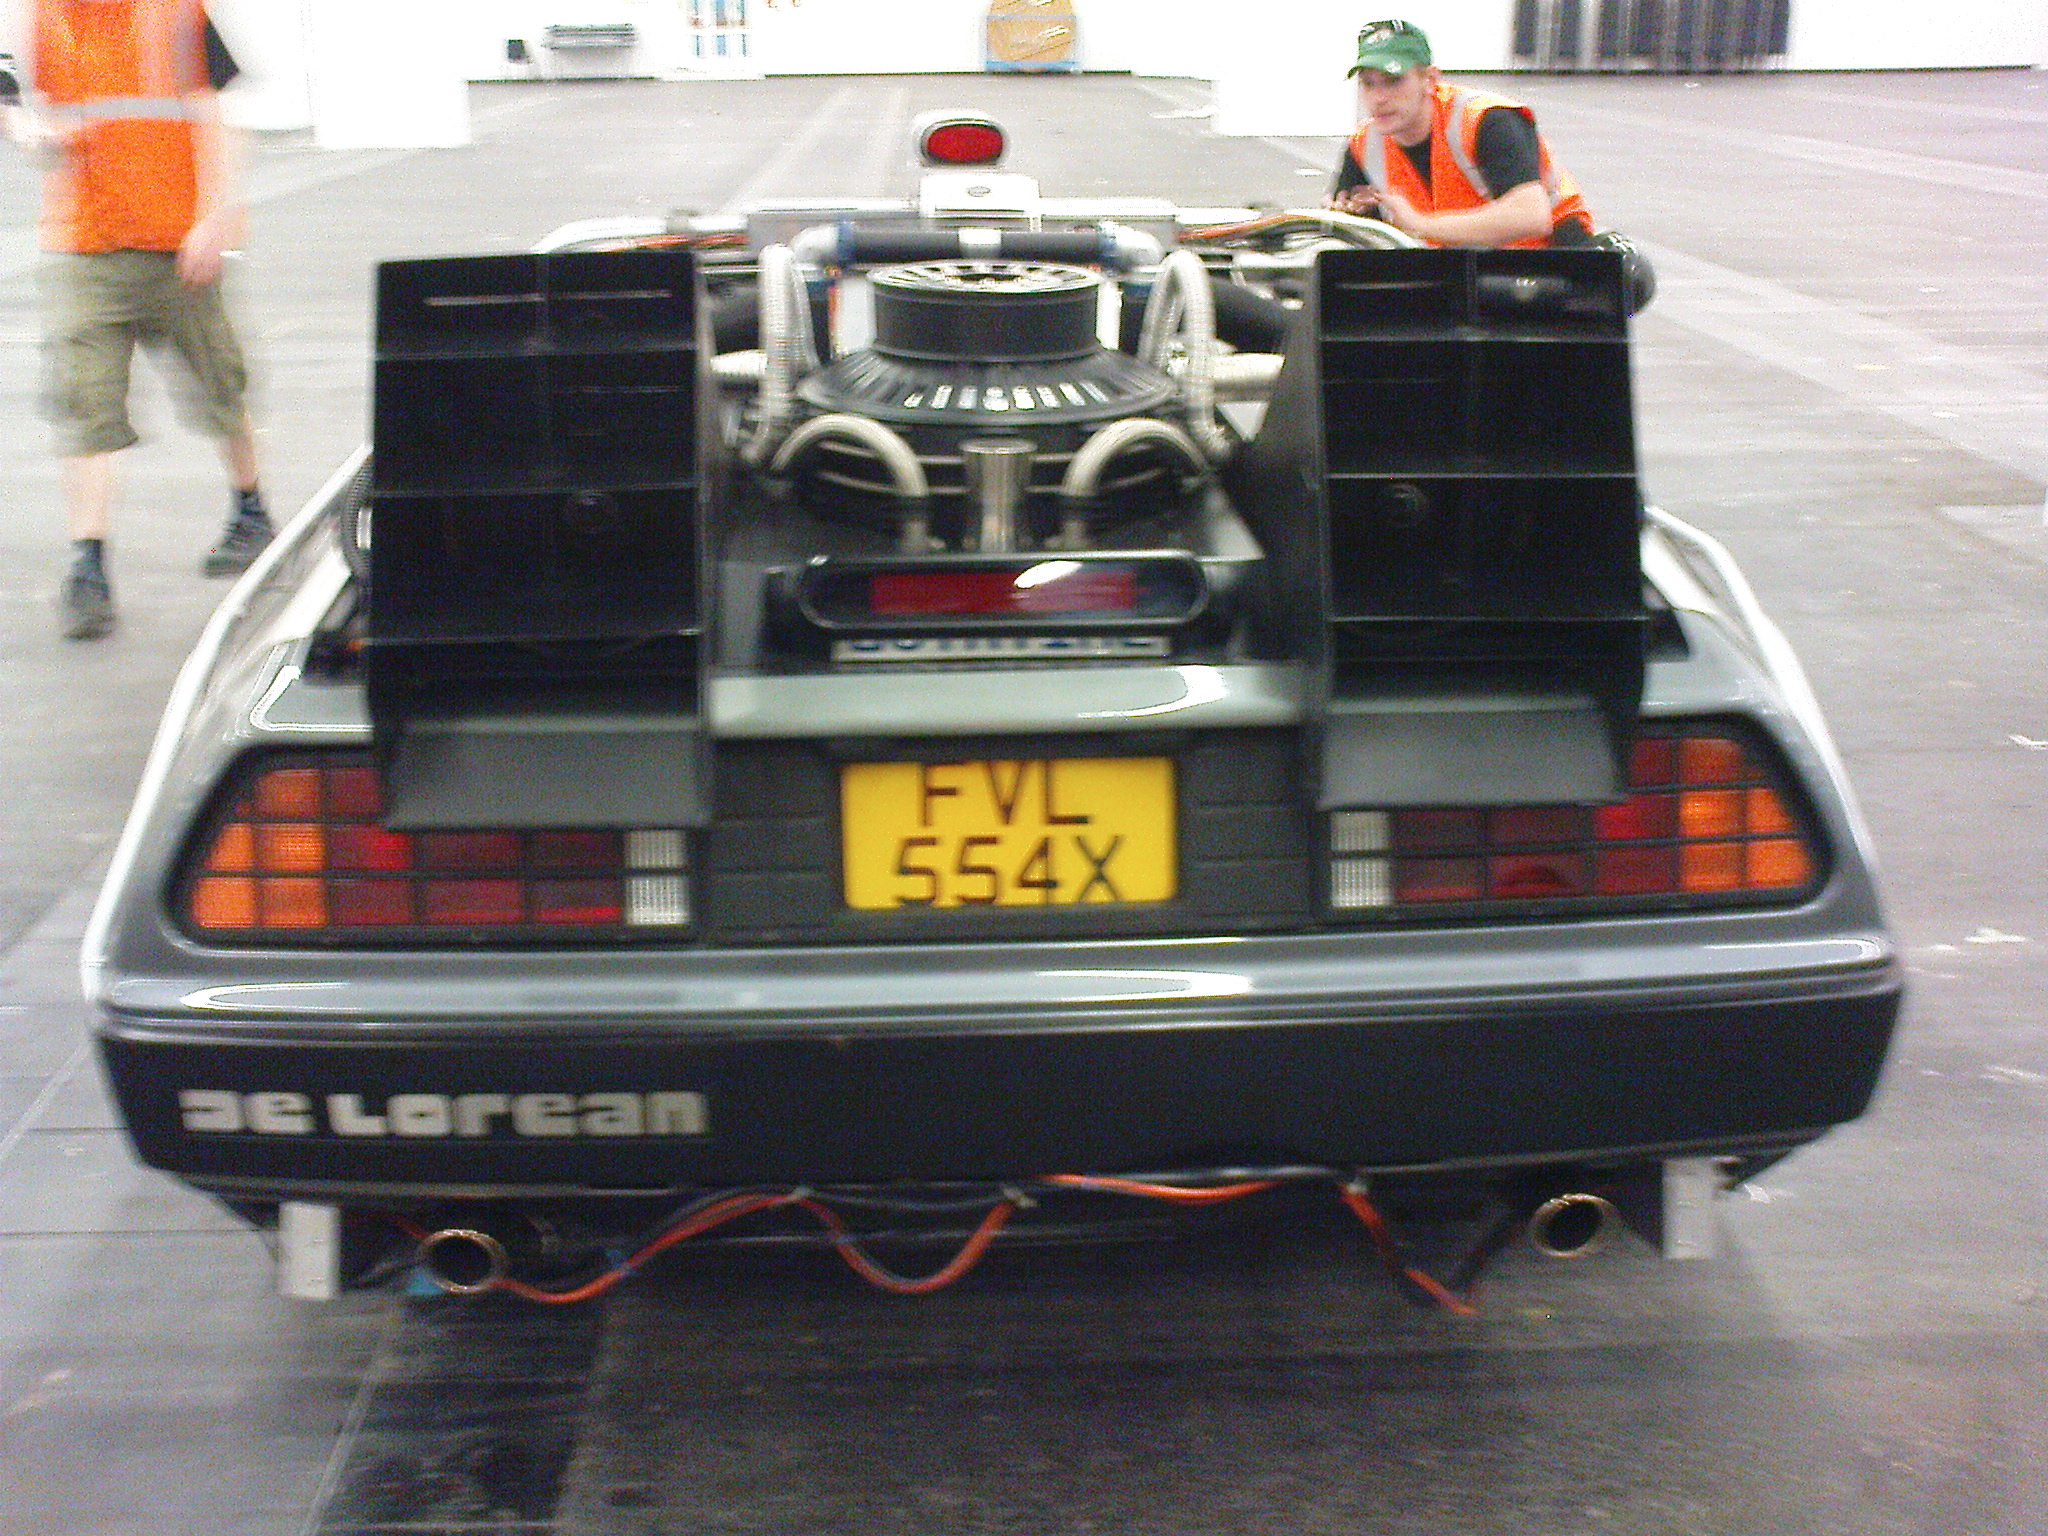 DeLorean - Heckansicht /Rear view